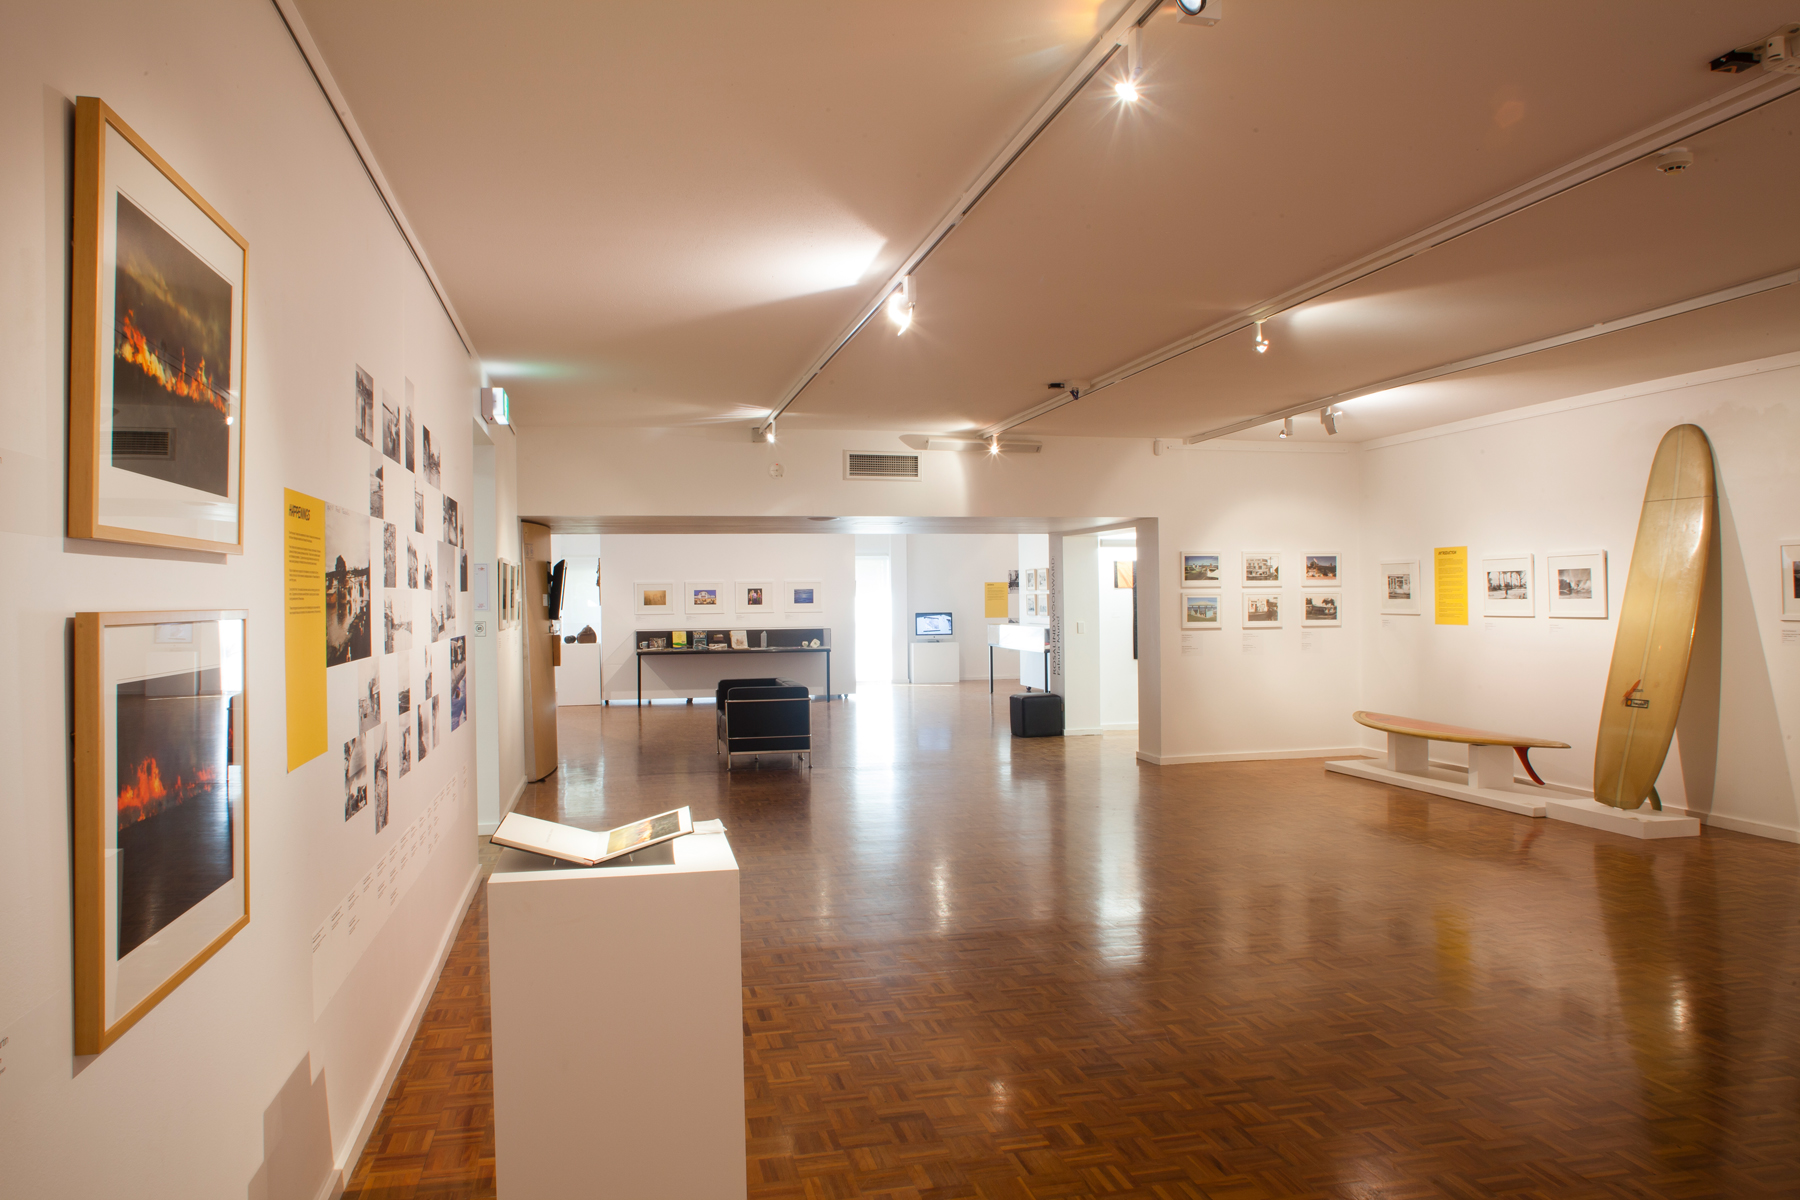 What's up sunshine? - What's up Sunshine? is a pictorial portrait of Noosa and the region over the last 50 years. Presenting over 400 photographs and memorabilia the exhibition reveals the many stories of the people and events that have shaped the culture and character of the region.  The exhibition features photographs and video from by leading local and Queensland artists including Glen O'Malley, Mal Sutherland, Judy Barrass, Emma Freeman, Brian Rogers, Bianca Beetson, James Muller, Larisa Salton, Lin Martin, Raoul Slater, Blair McNamara and Andy Staley.It also features many images from the Picture Noosa collection by press photographers Bill Griffiths and Ian Murray.